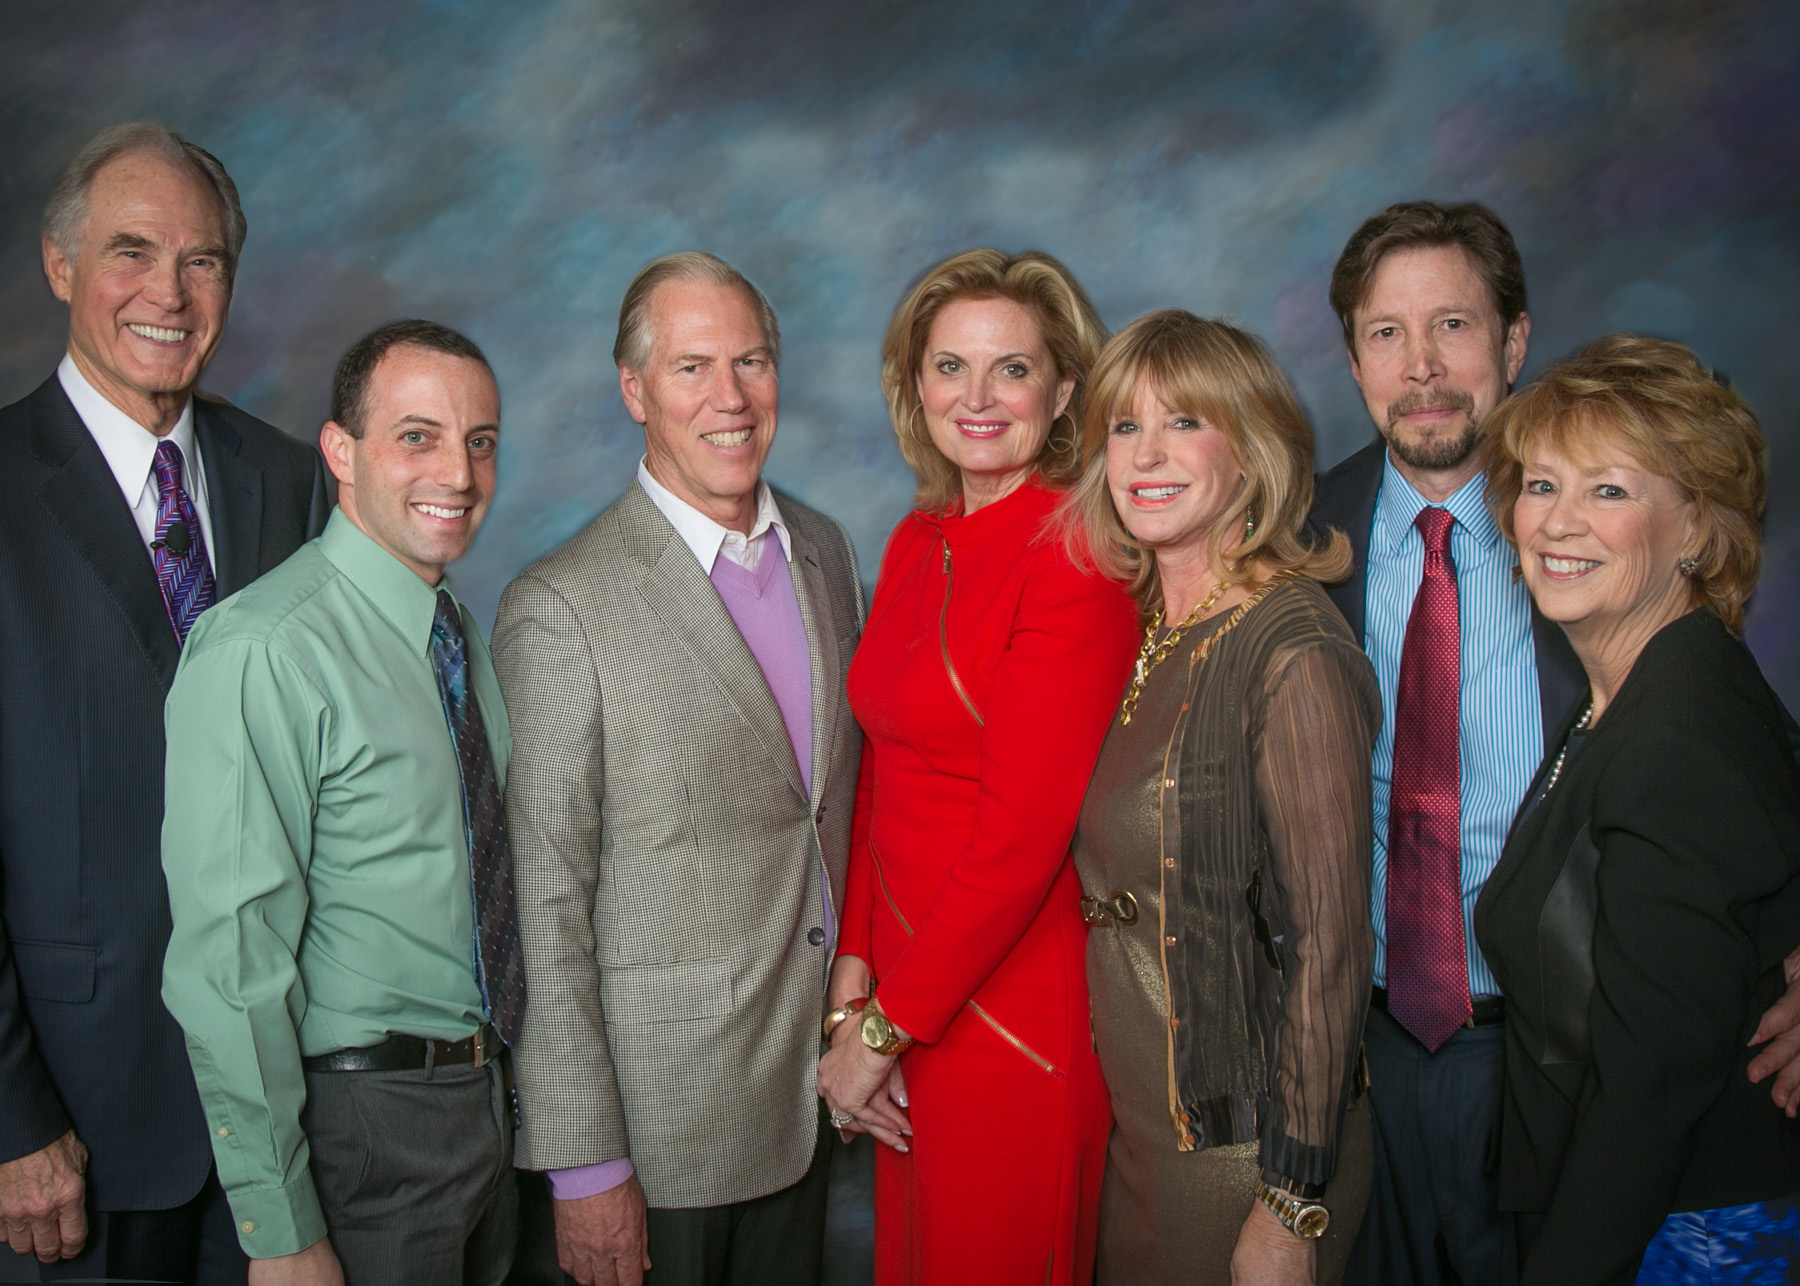 Members of the Board with Ann Romney at a 2013 Fundraising Event: Visions of Success - From Research to Reality